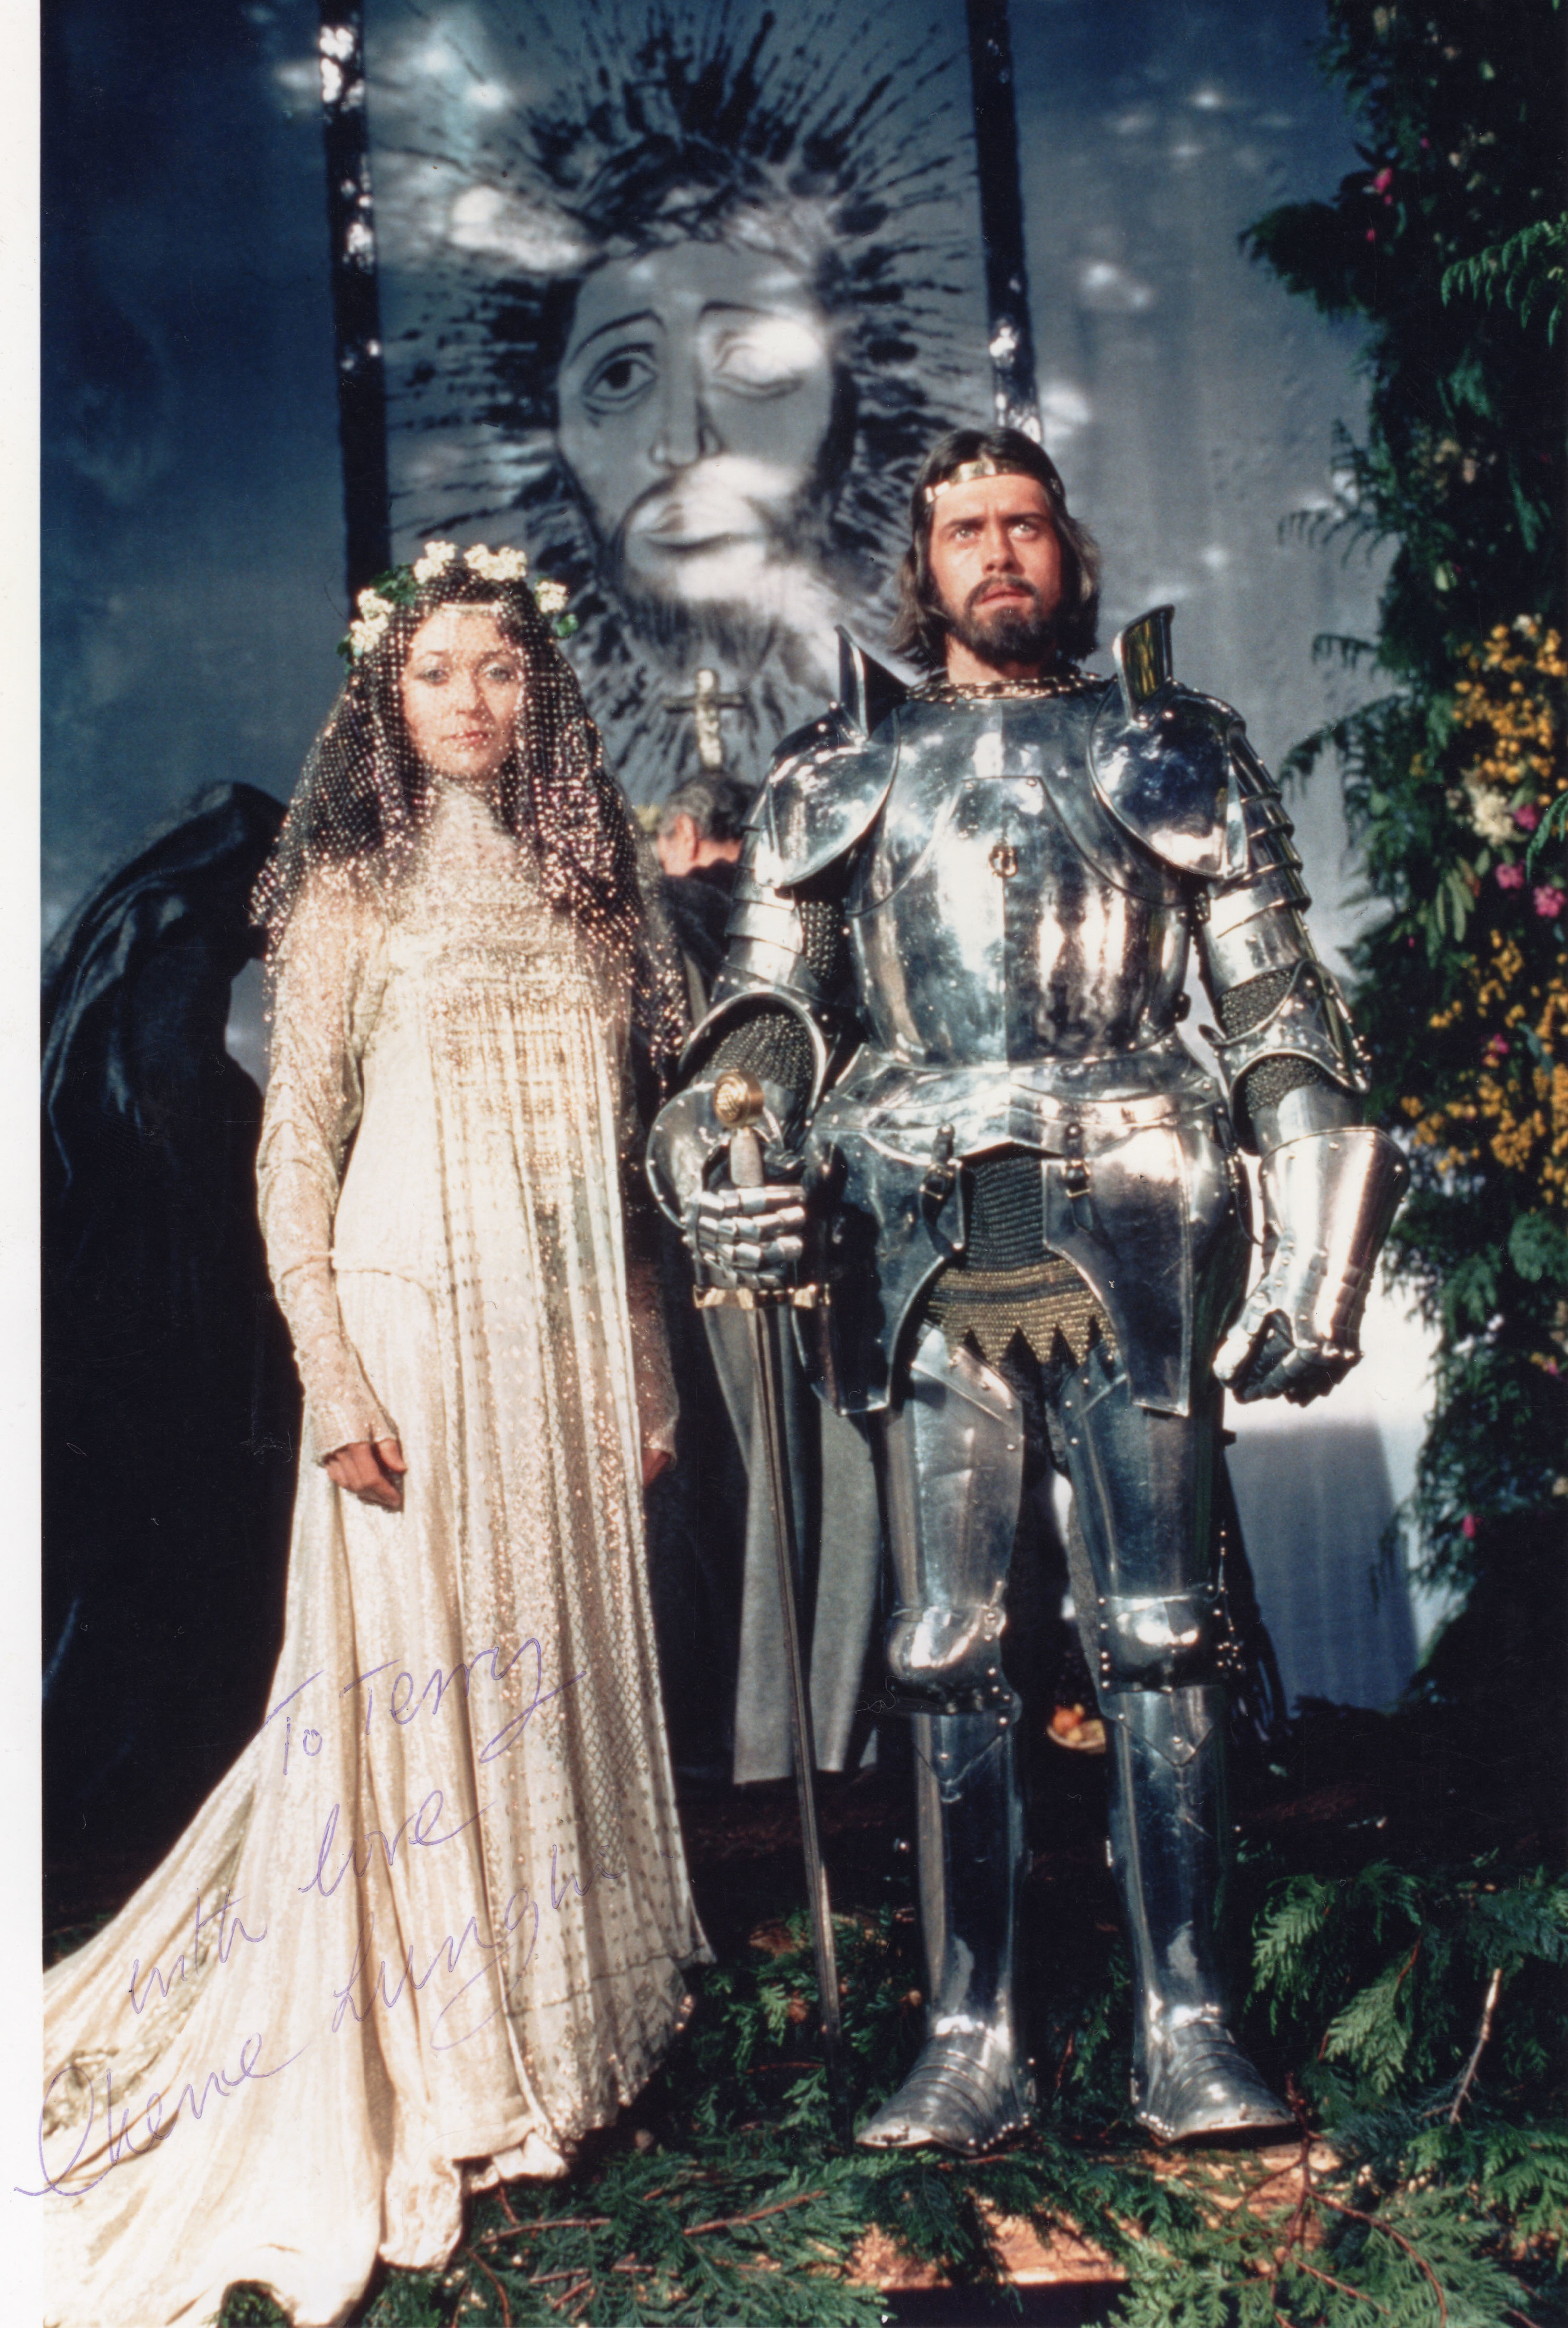 Nigel Terry & Cherie Lunghi